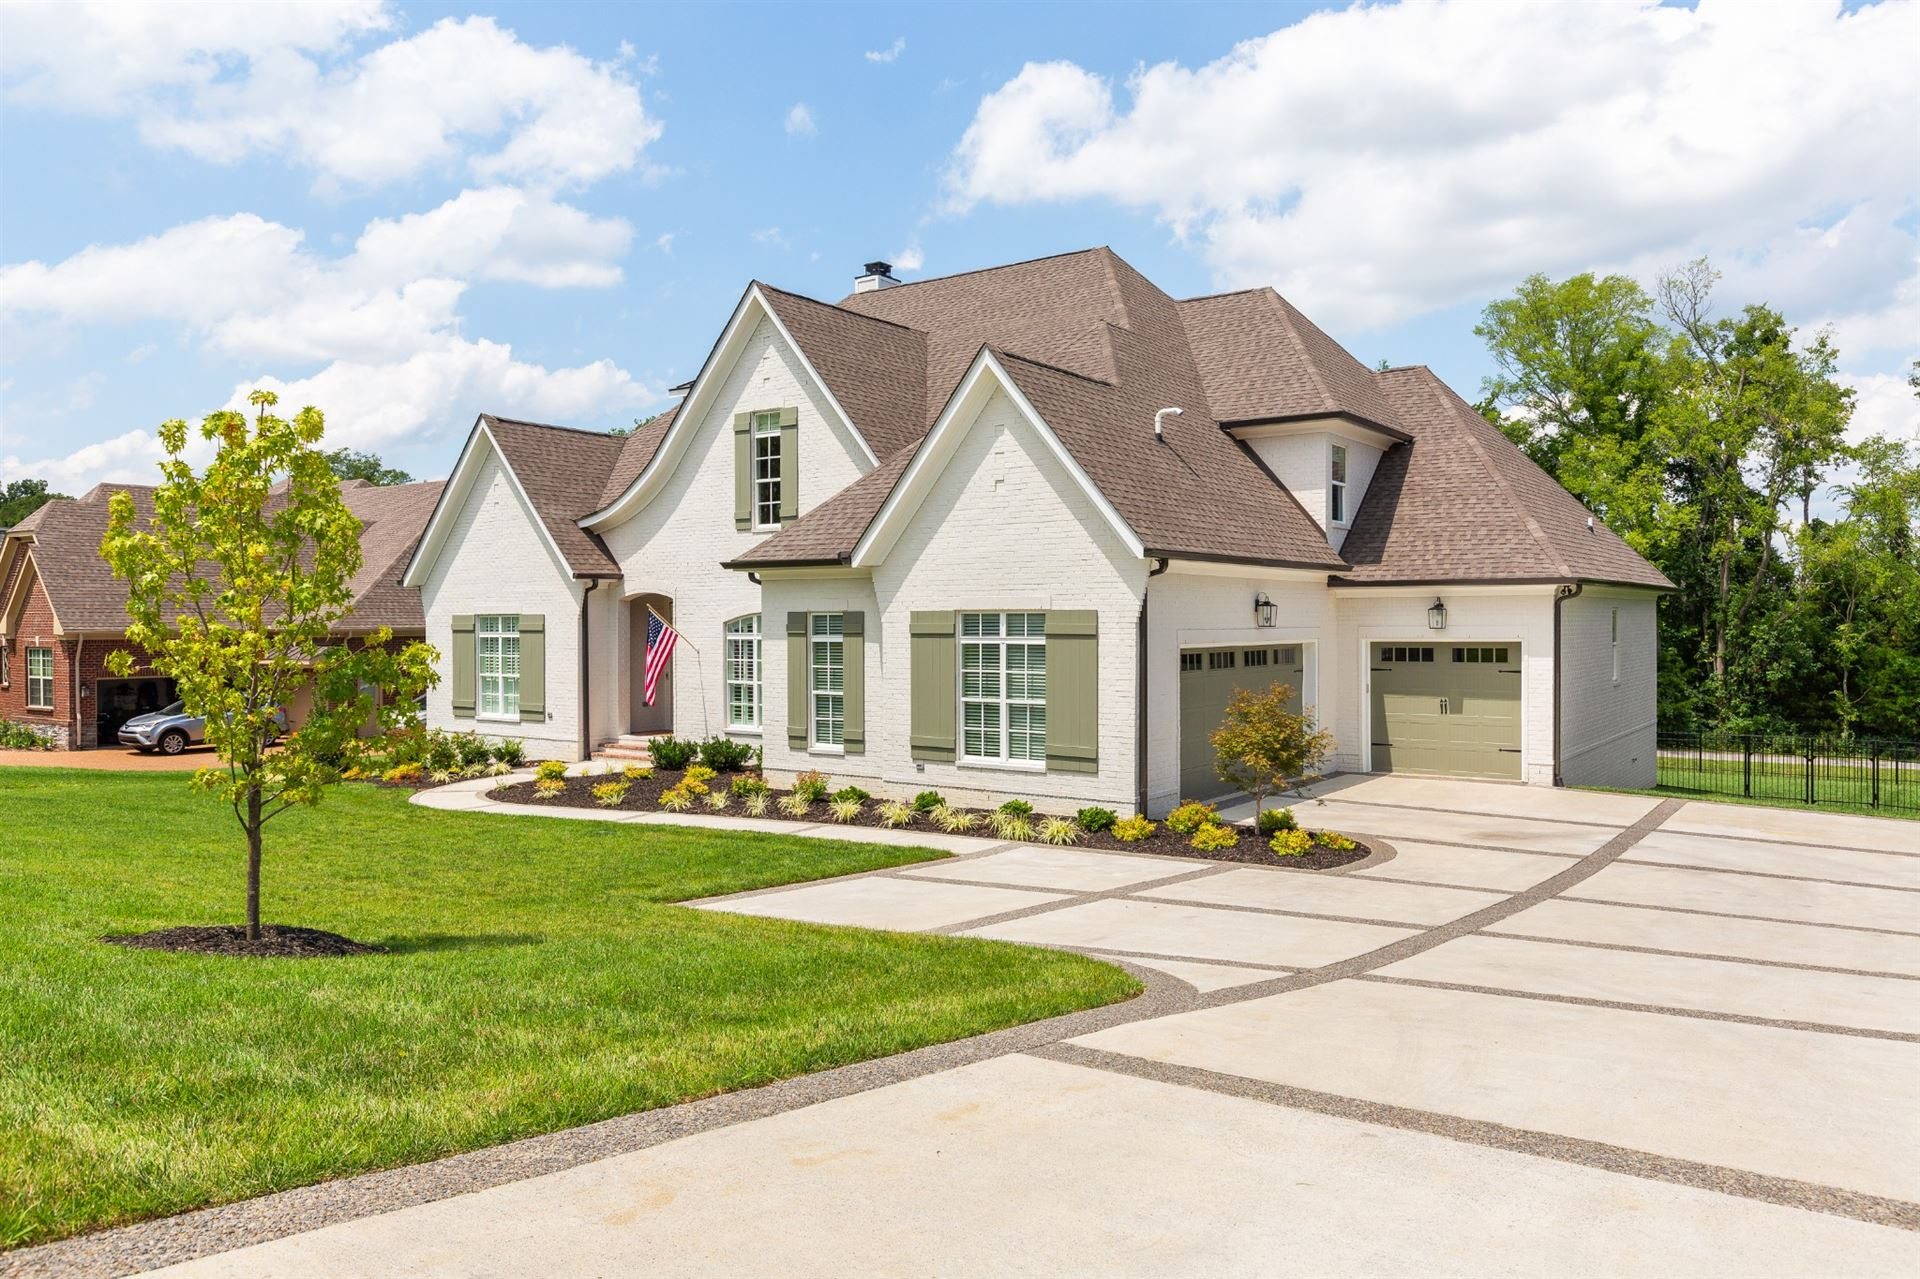 Photo of 9014 Carnival Dr, Brentwood, TN 37027 (MLS # 2184537)